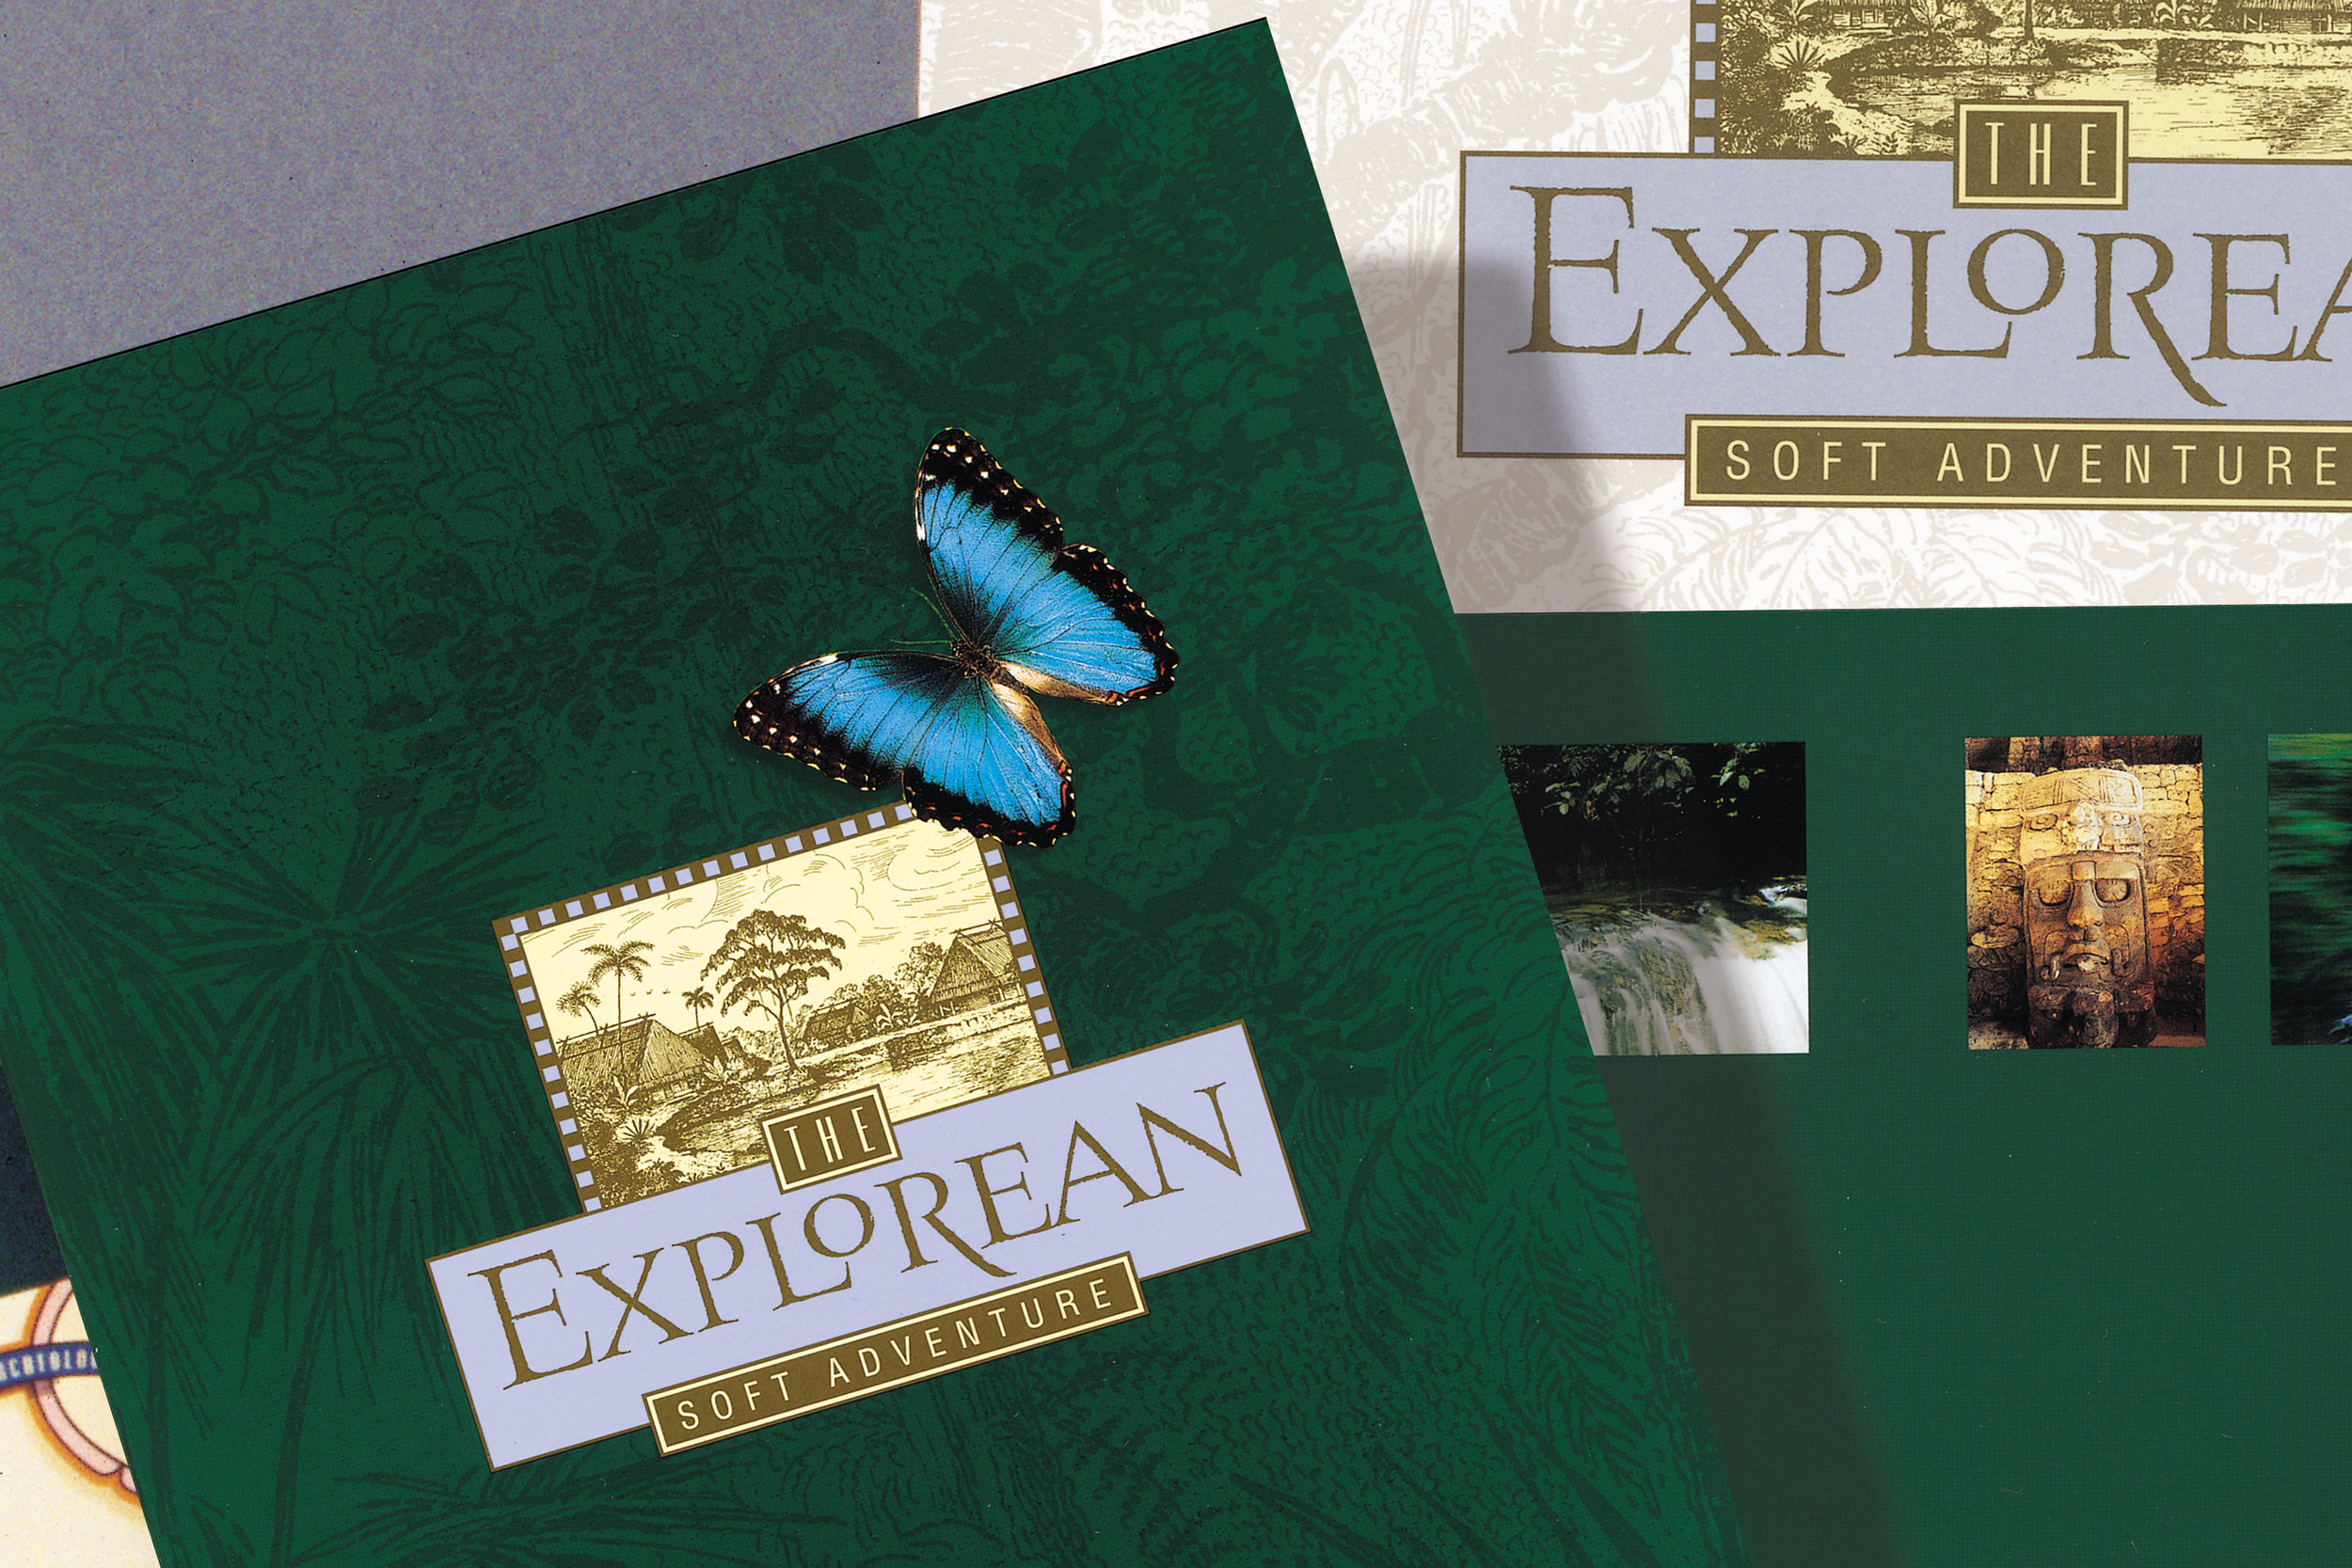 Explorean Logo.jpg